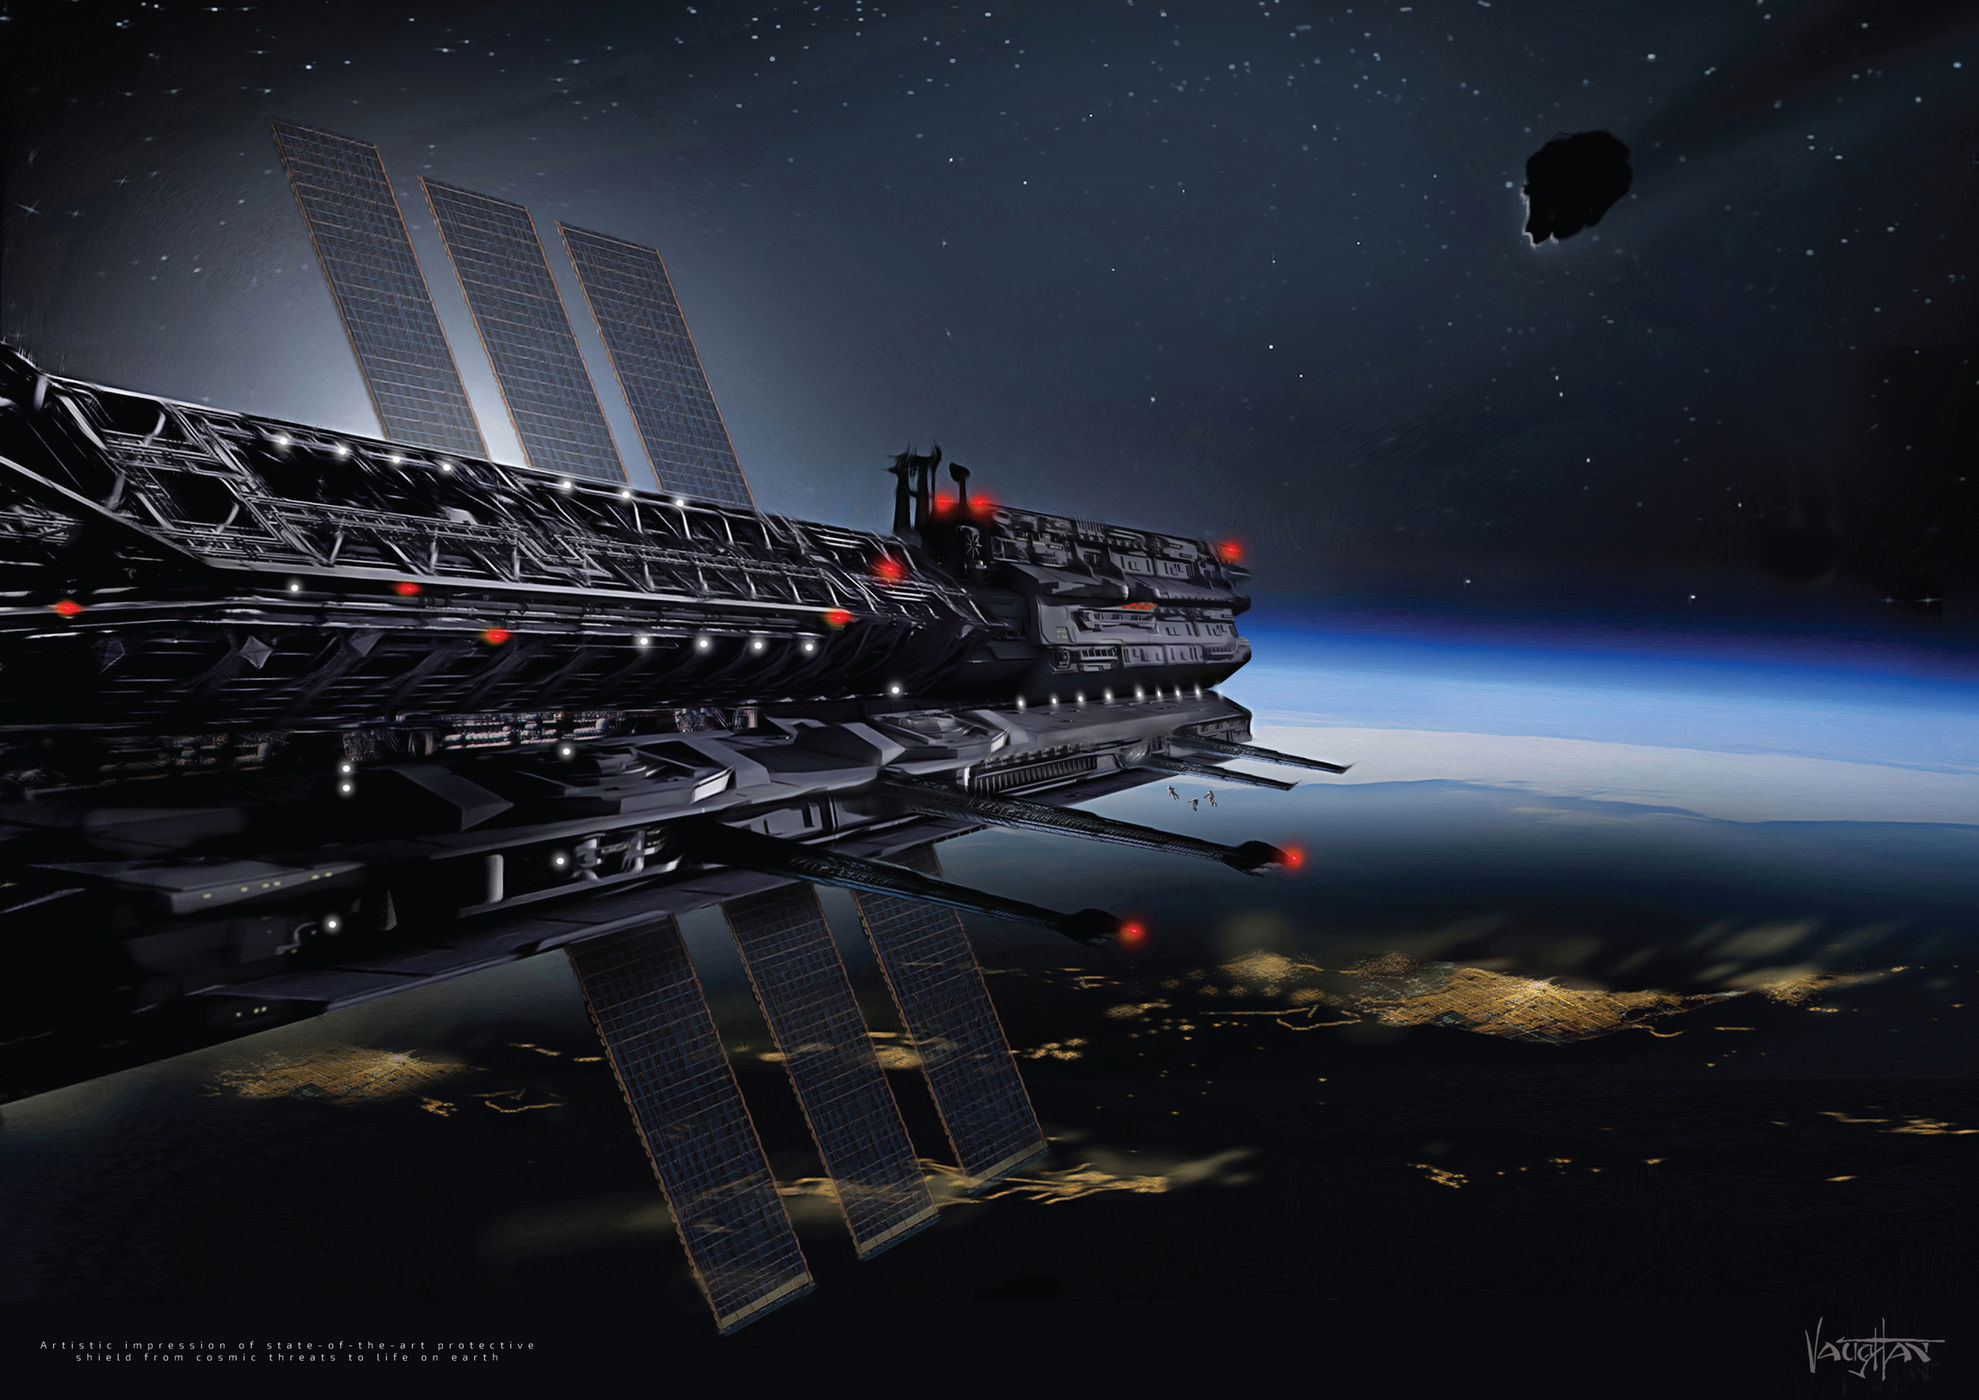 Asgardia space station